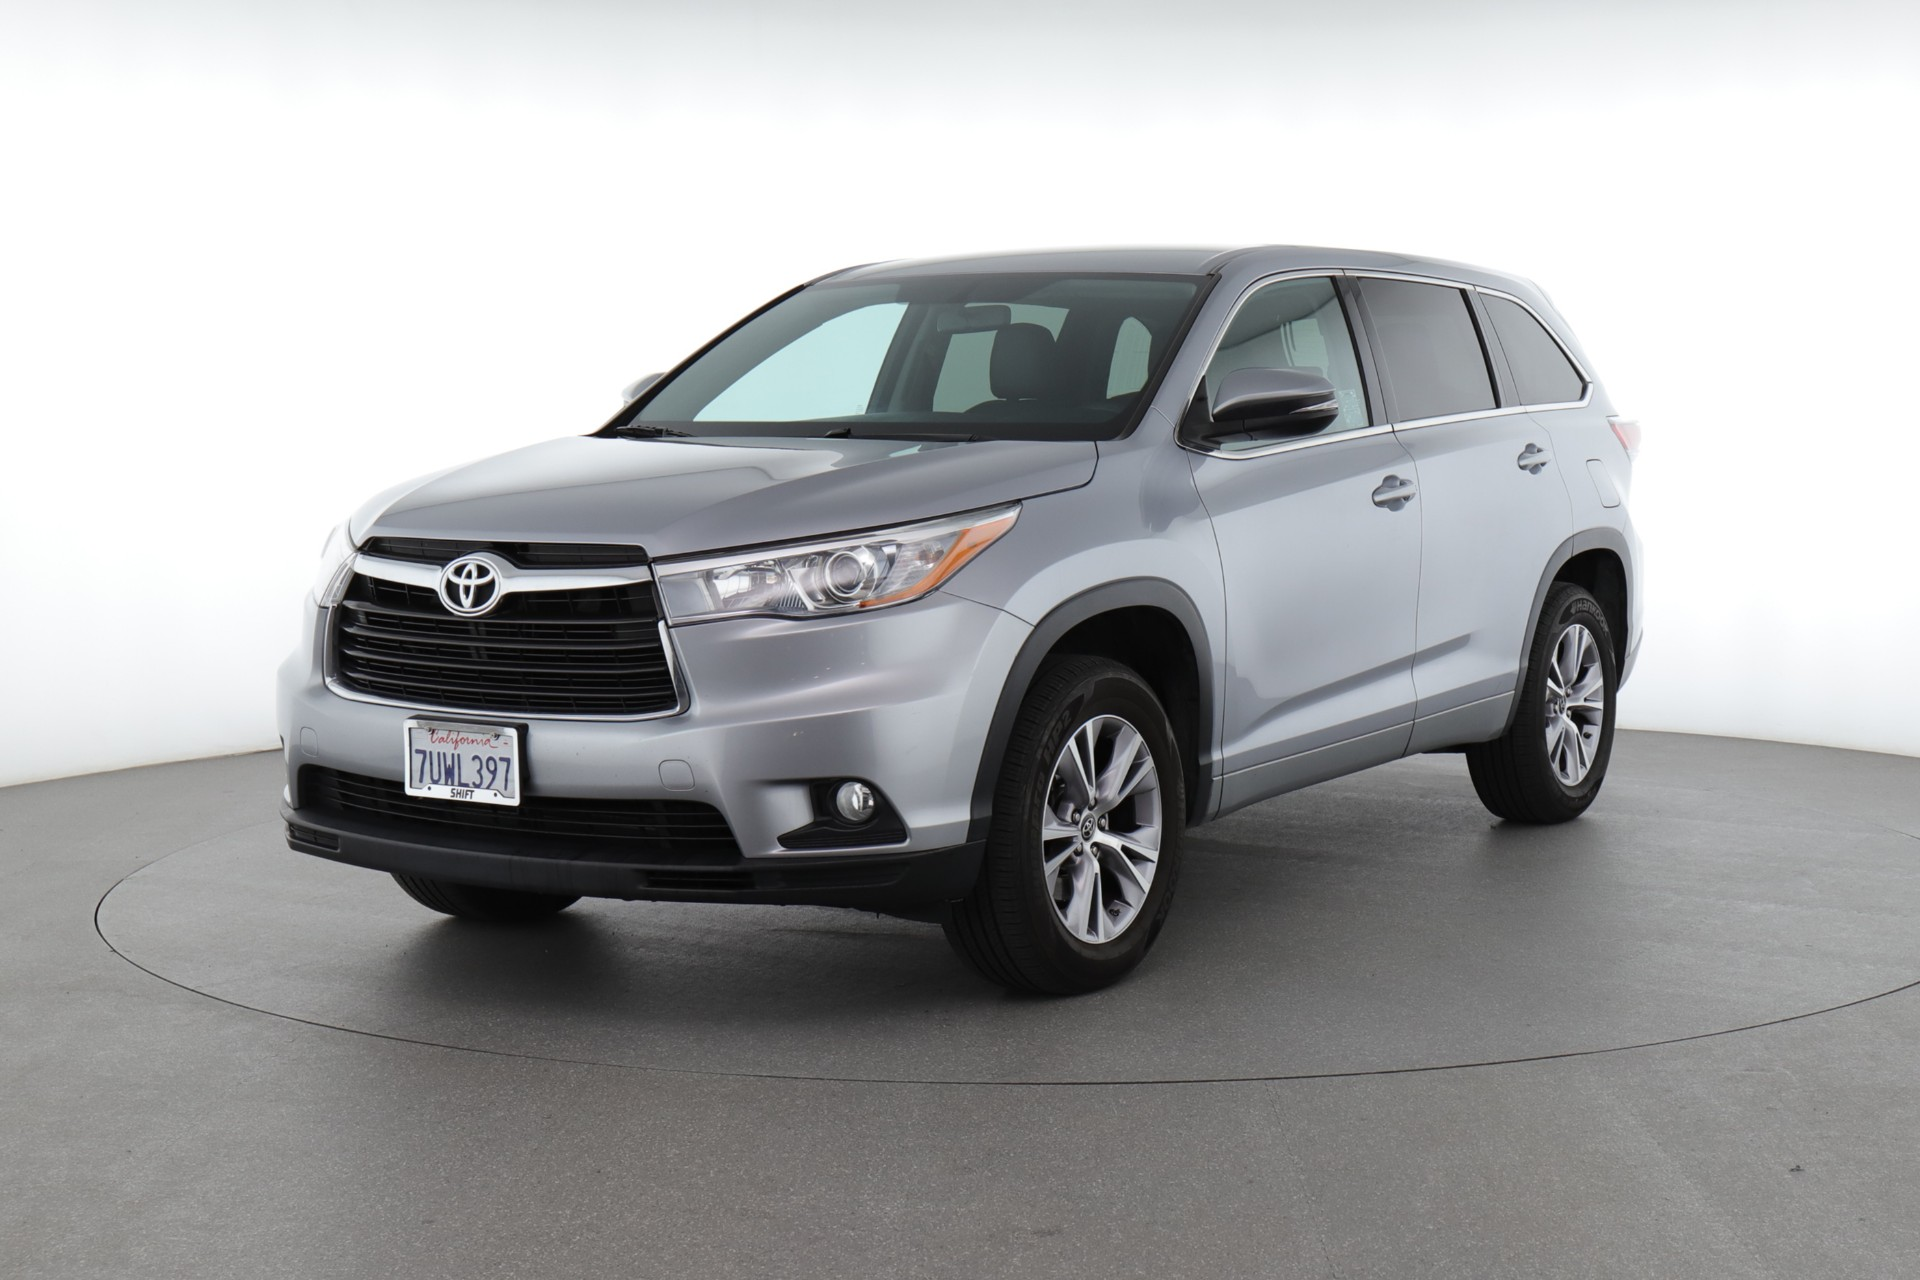 Best Large Family SUVs: A Smart Investment On Your Family's Happiness